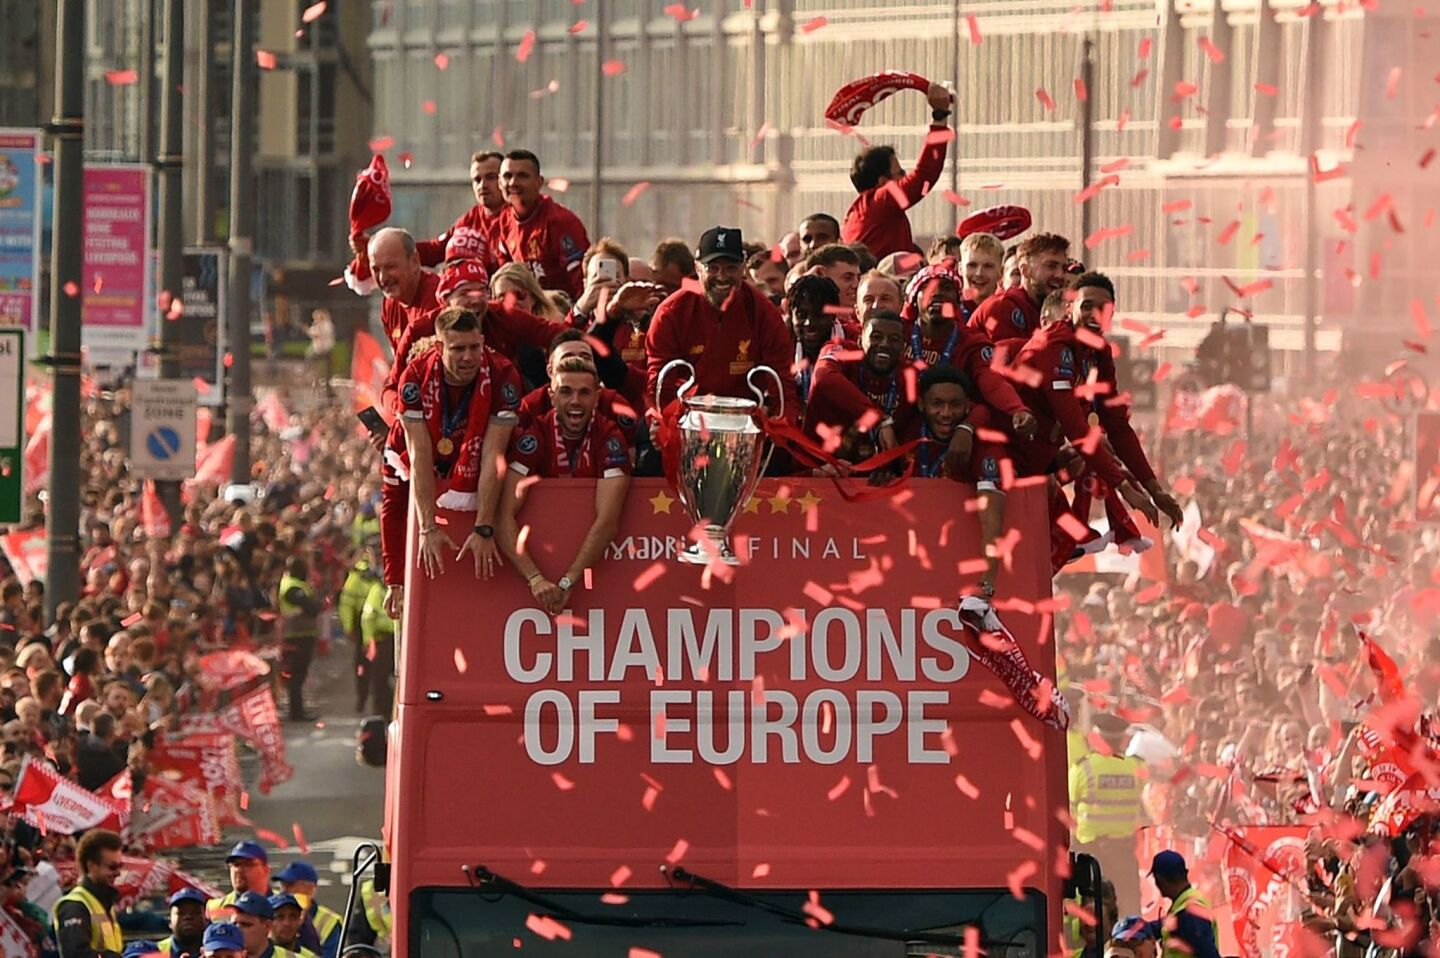 Liverpool's German manager Jurgen Klopp (C) holds the European Champion Clubs' Cup trophy during an open-top bus parade around Liverpool, north-west England on June 2, 2019, after winning the UEFA Champions League final football match between Liverpool and Tottenham. - Liverpool's celebrations stretched long into the night after they became six-time European champions with goals from Mohamed Salah and Divock Origi to beat Tottenham -- and the party was set to move to England on Sunday where tens of thousands of fans awaited the team's return. The 2-0 win in the sweltering Metropolitano Stadium delivered a first trophy in seven years for Liverpool, and -- finally -- a first win in seven finals for coach Jurgen Klopp. (Photo by Oli SCARFF / AFP)OLI SCARFF/AFP/Getty Images ** OUTS - ELSENT, FPG, CM - OUTS * NM, PH, VA if sourced by CT, LA or MoD **